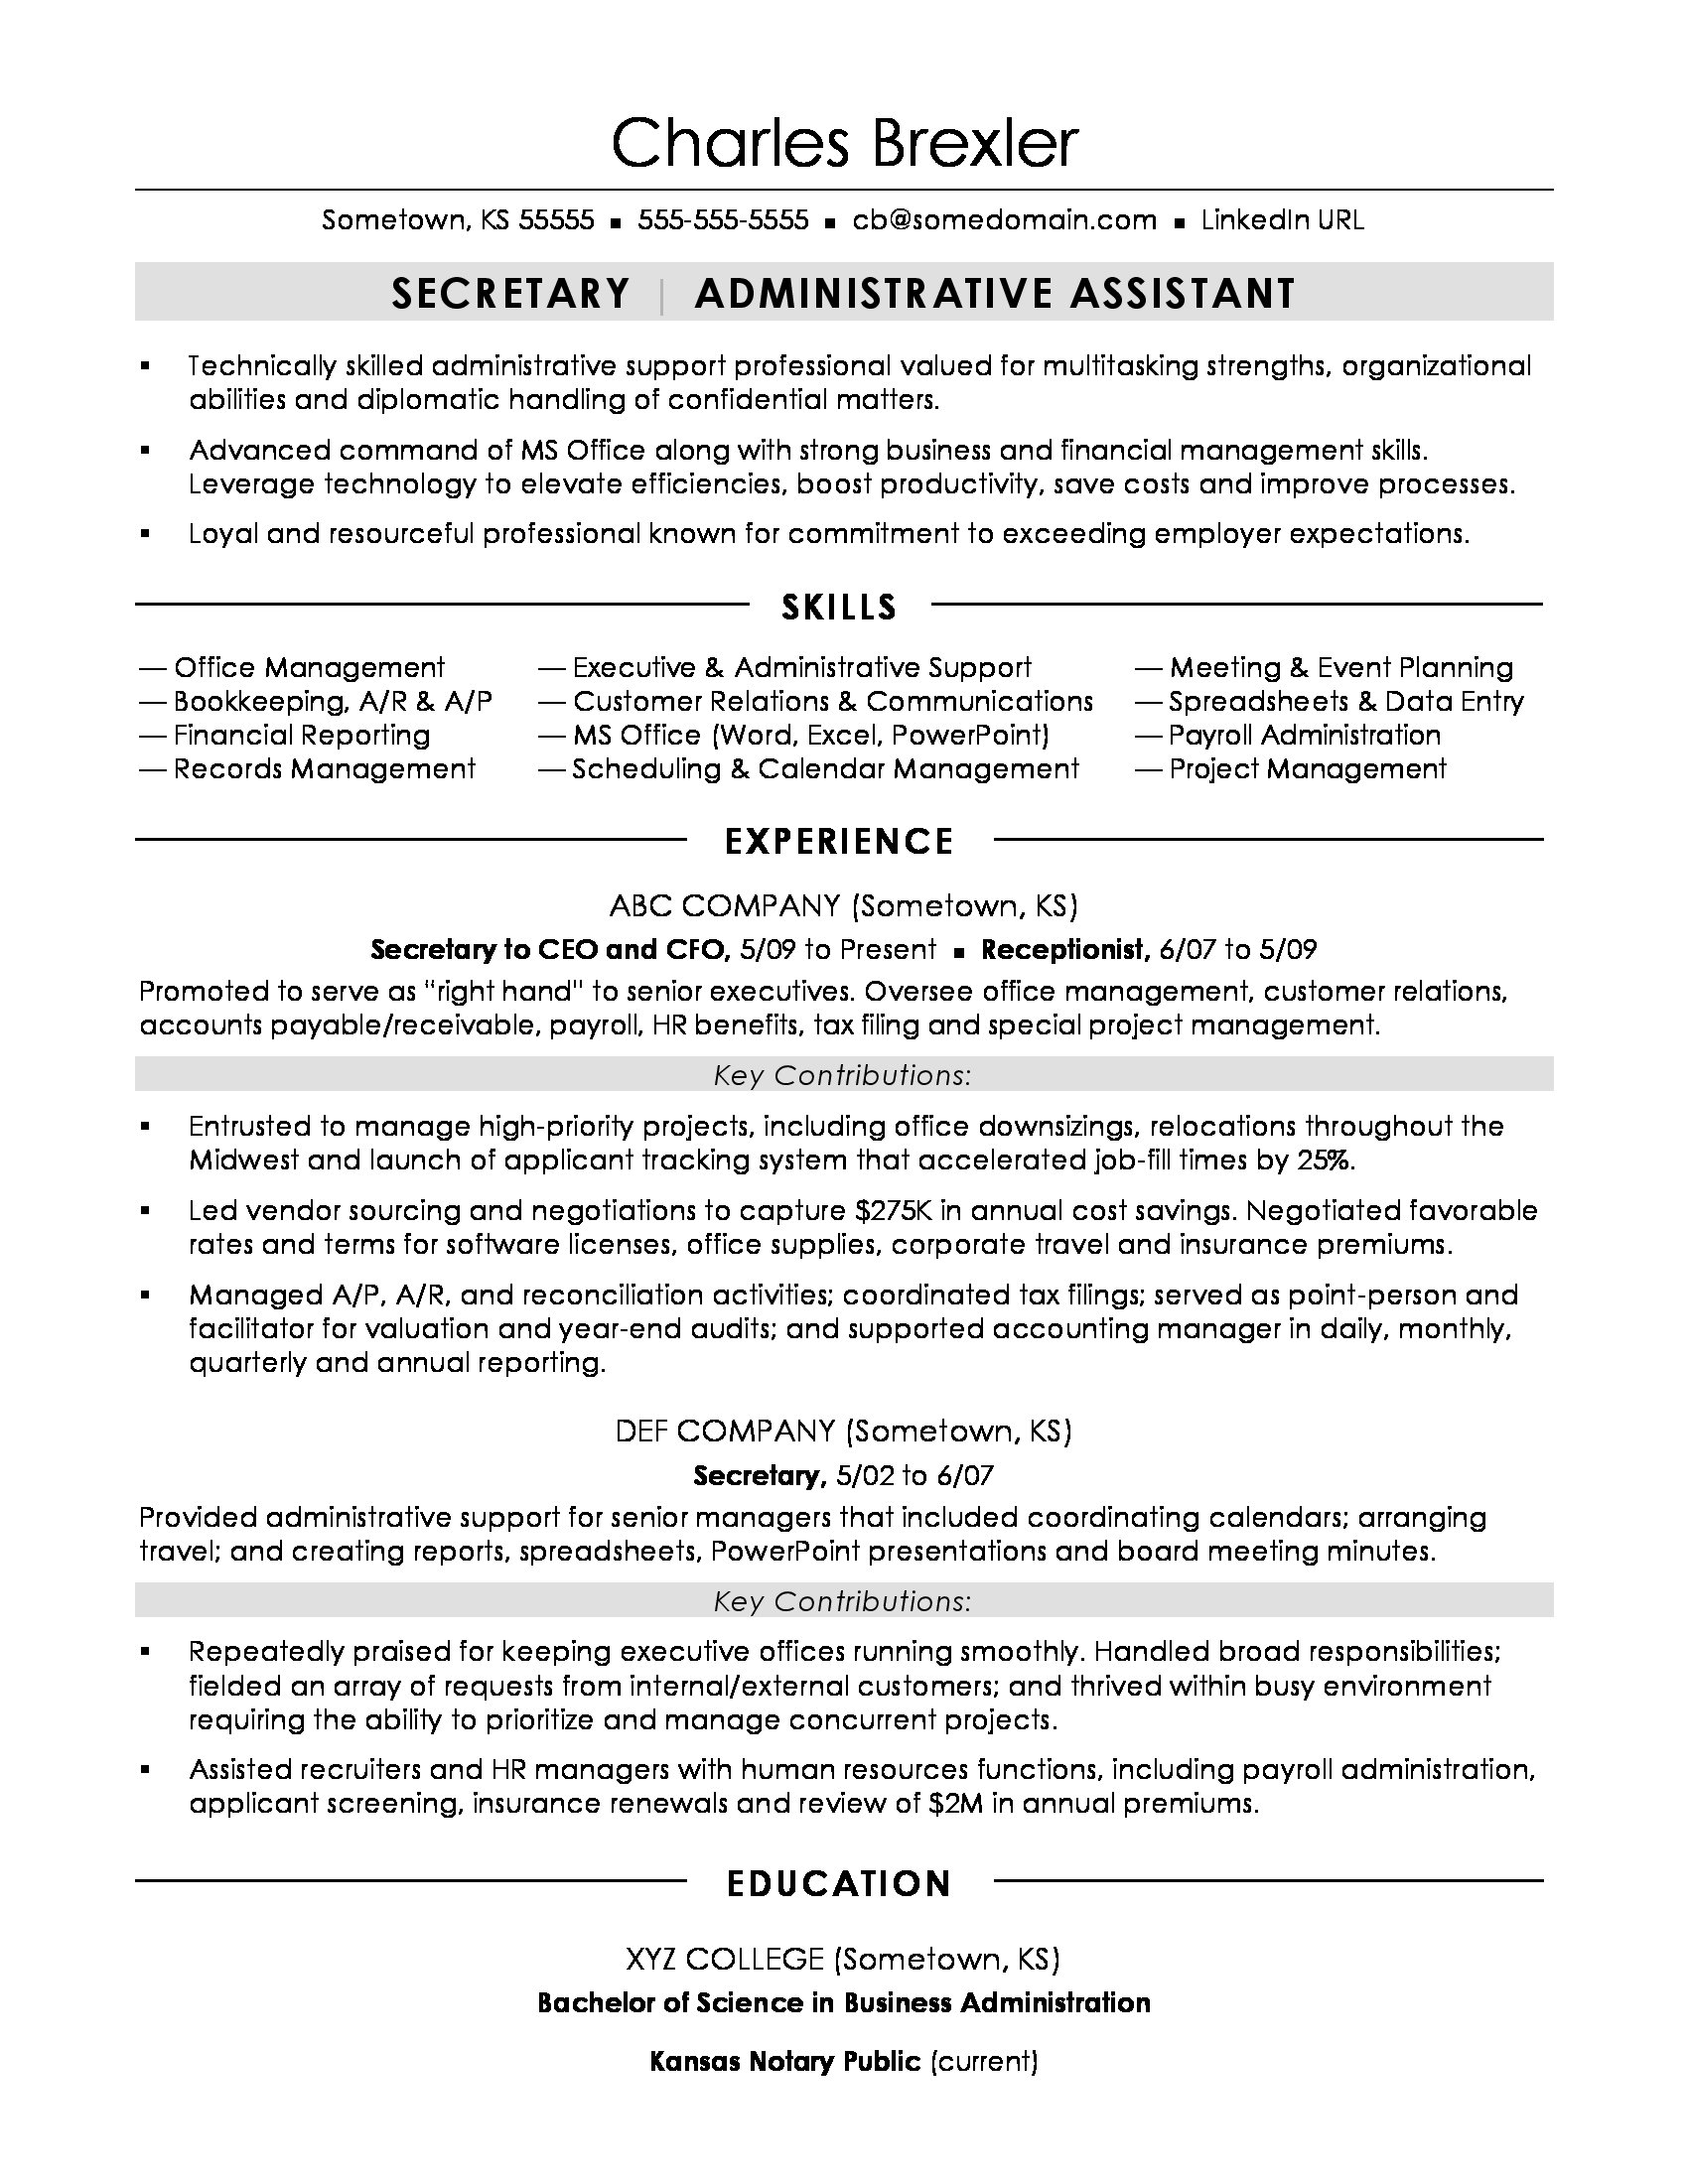 secretary resume sample monster duties entry level personal trainer example free instant Resume Secretary Duties Resume